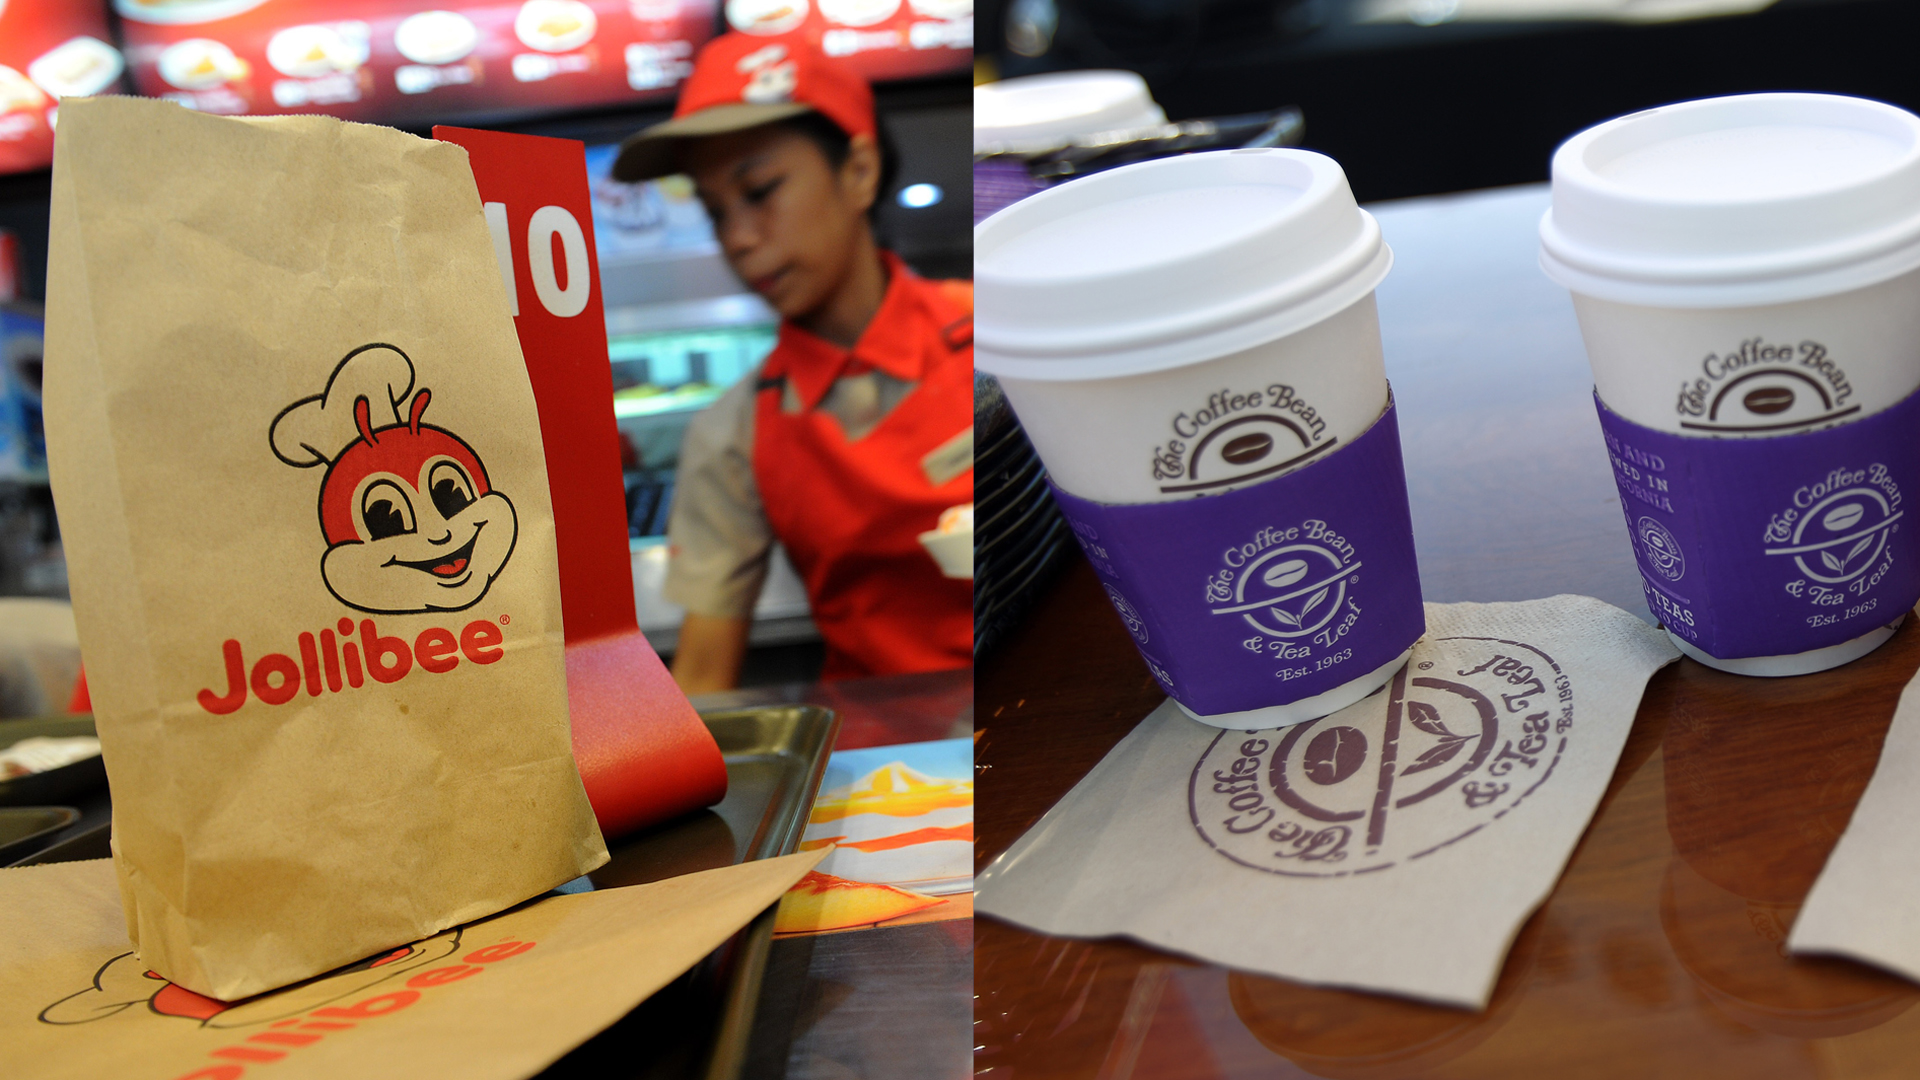 From left to right: Food from the Philippines' largest fast food chain, Jollibee, is pictured in Manila on Oct. 14, 2015. Hot beverages from on April 17, 2016 in West Hollywood. (Credit: Getty Images)